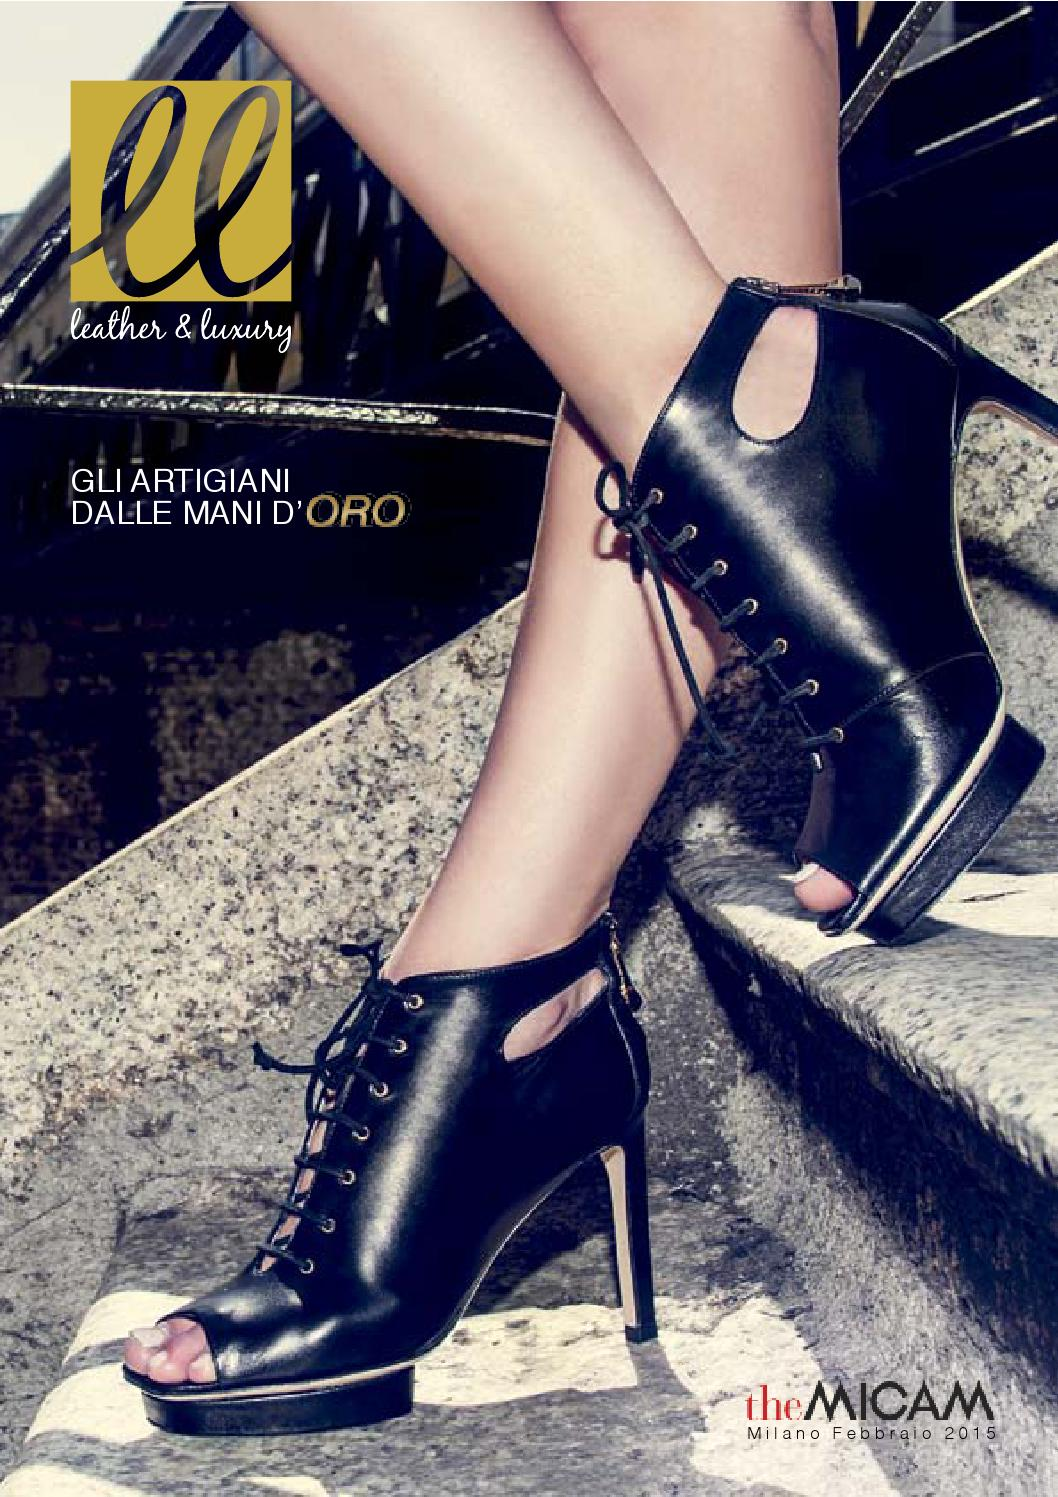 Leather   luxury 5 by MGA Comunicazione - issuu 23215506b14